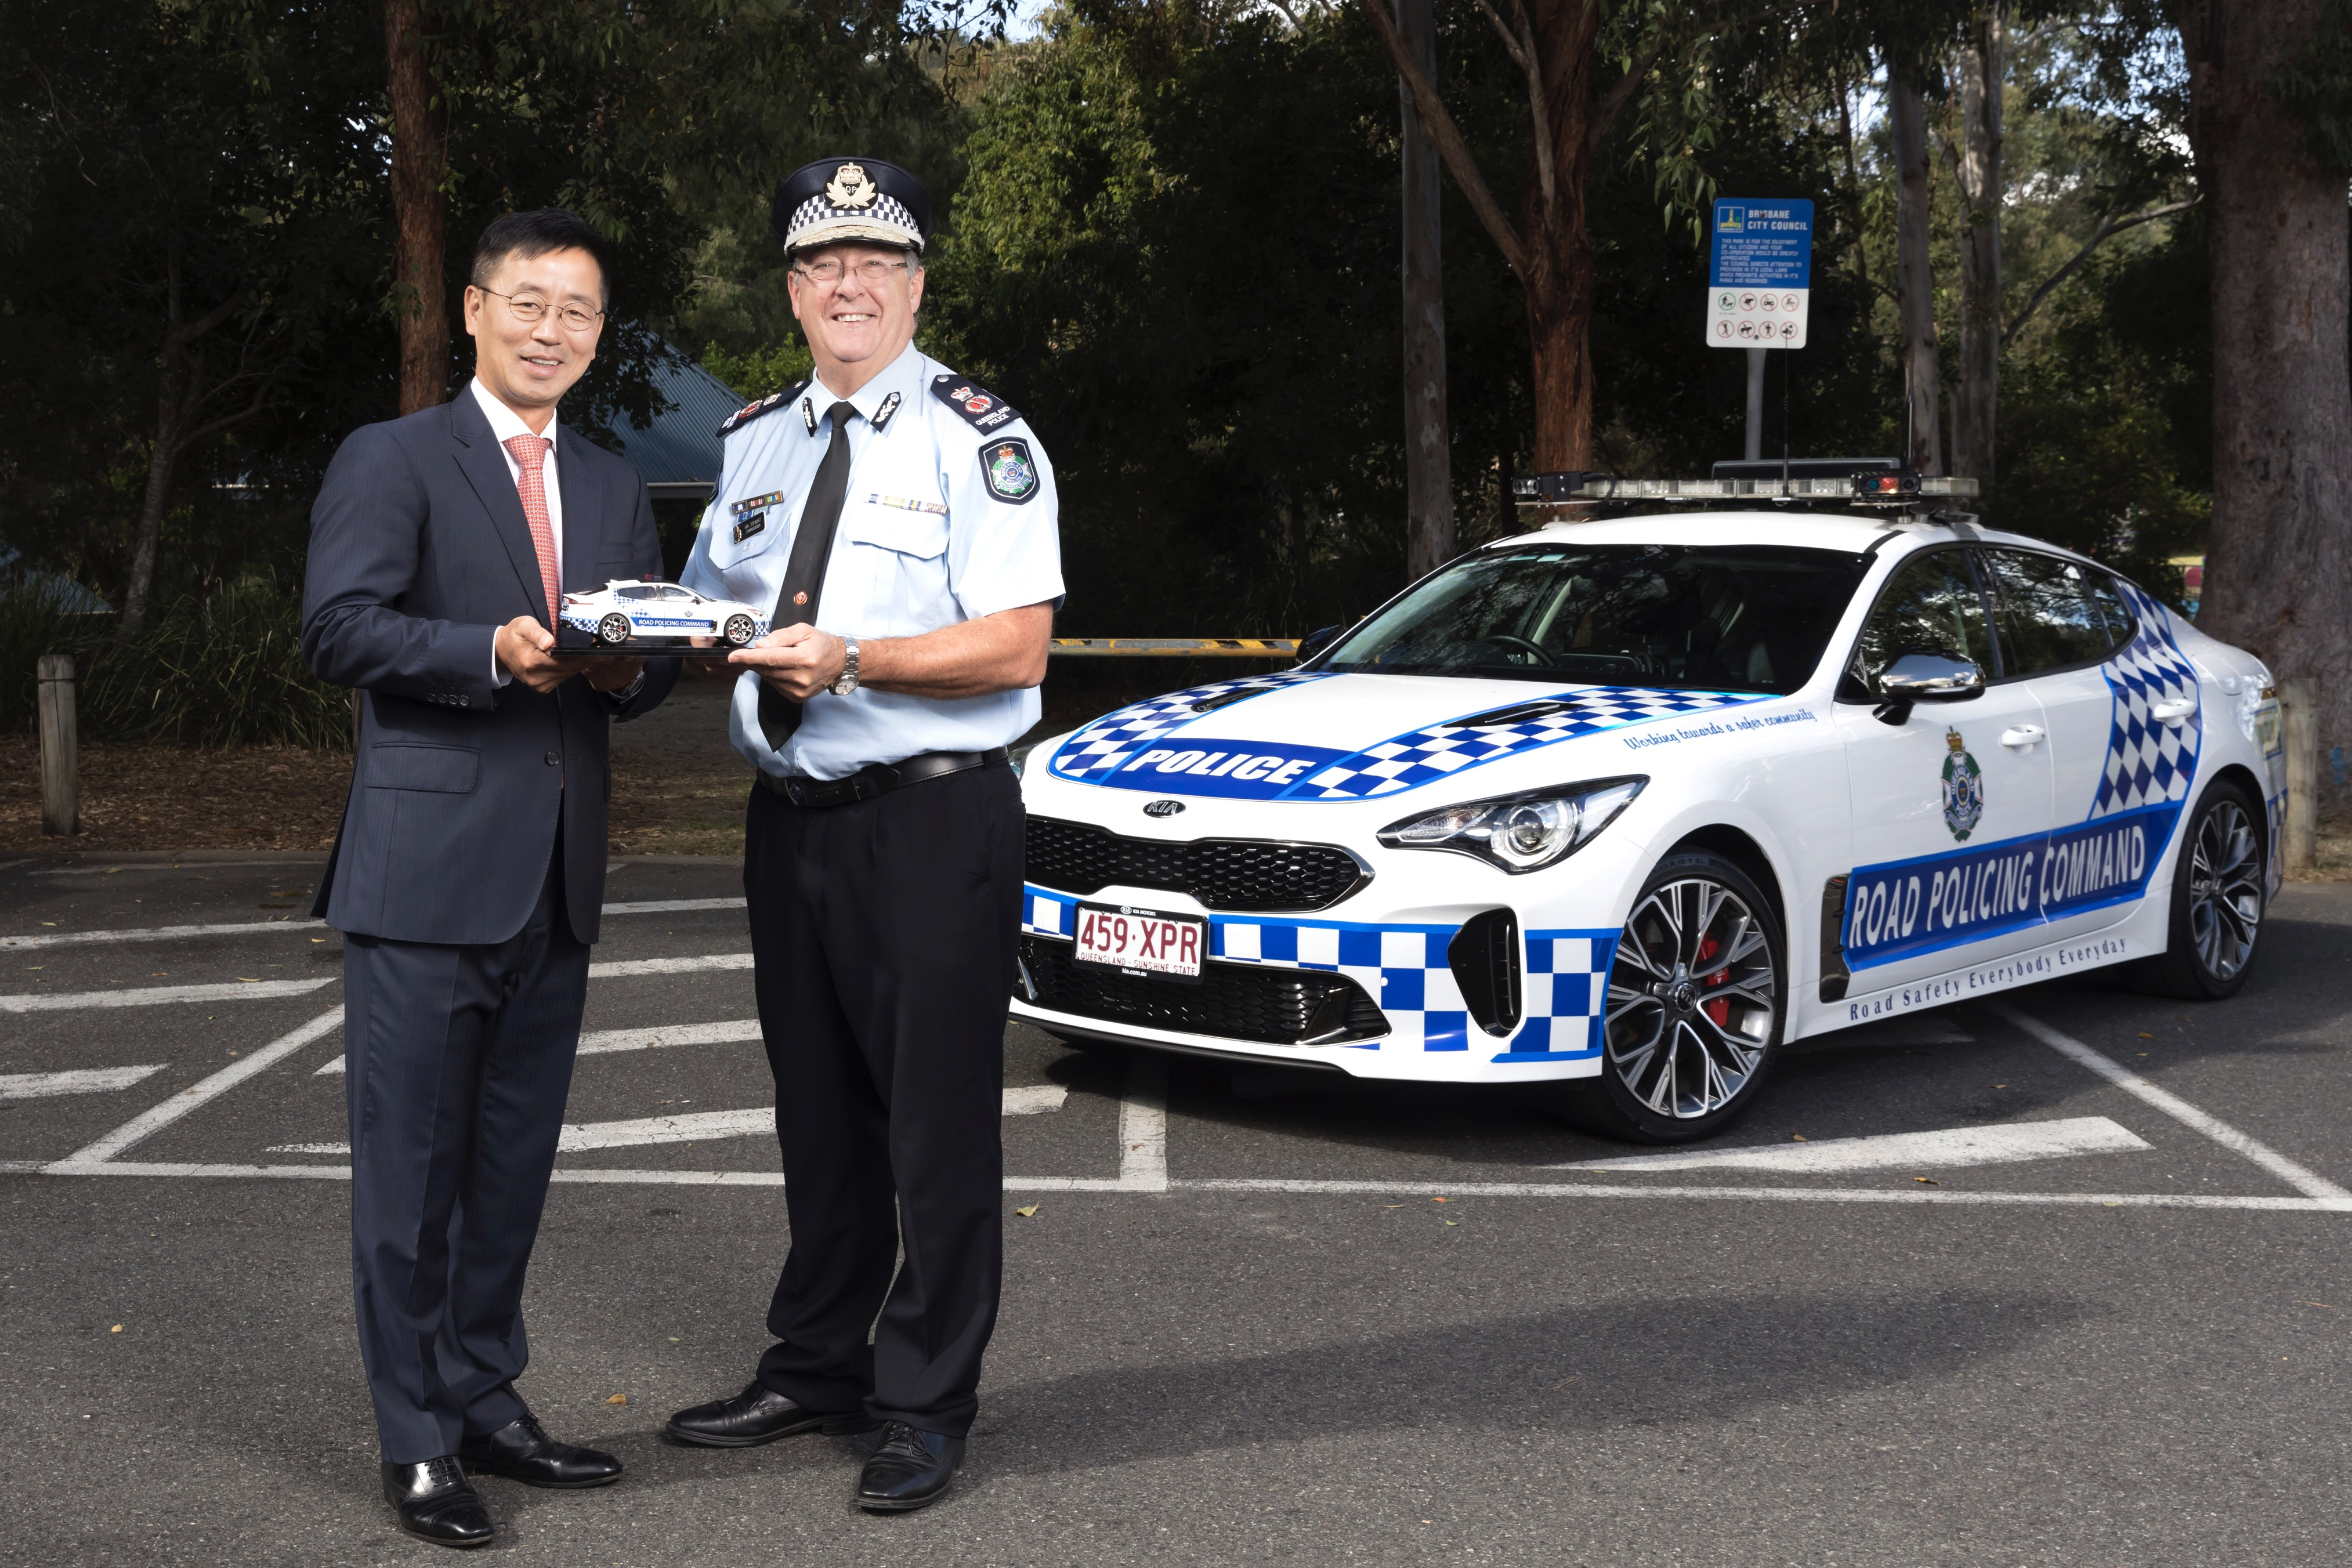 News Kia Stinger Reports For Duty With Queensland Police